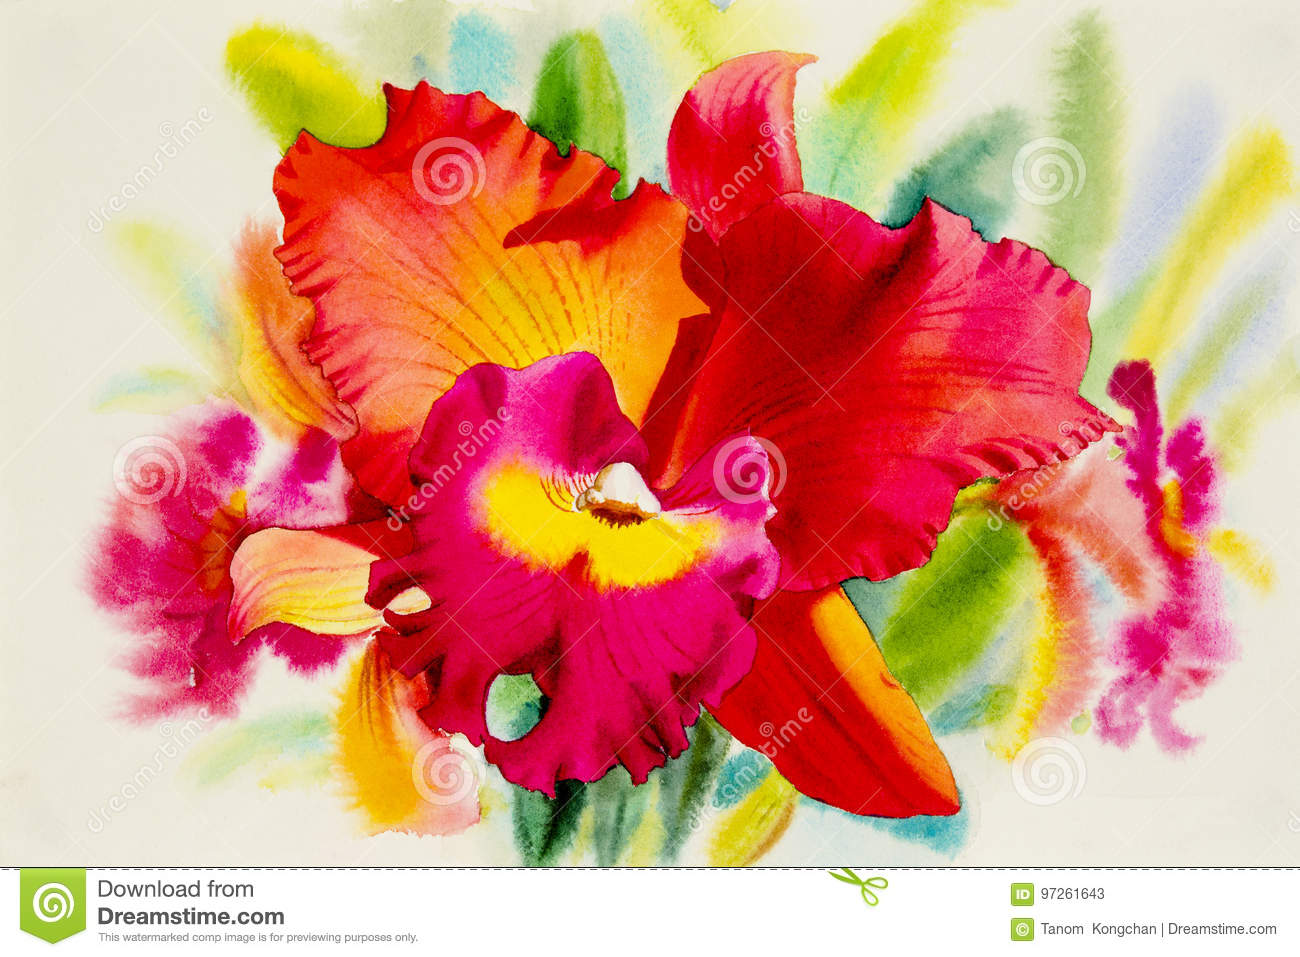 Watercolor Painting Orange Pink Red Color Of Orchid Flower. Stock ...